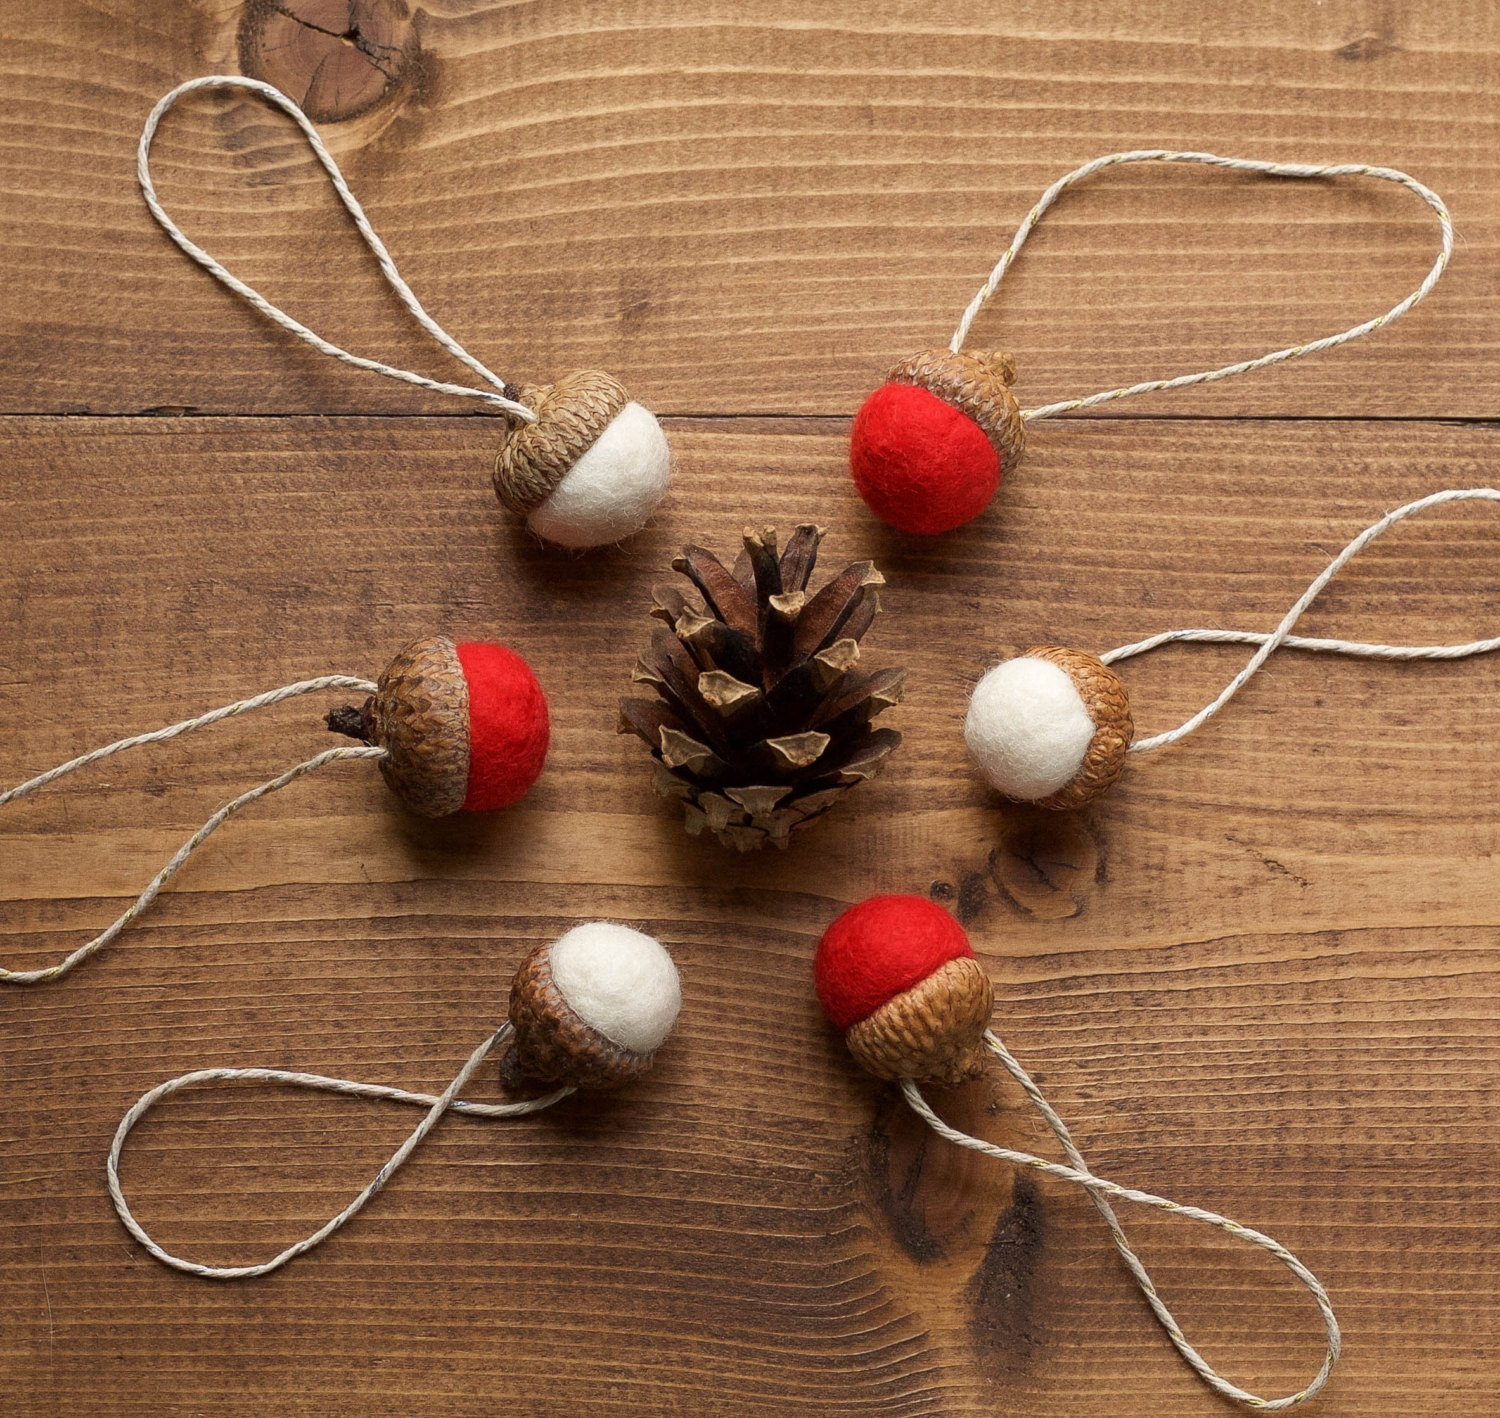 Felt Acorn Christmas Ornaments In Red And White, Wool Felted Acorns,  Christmas, Holiday